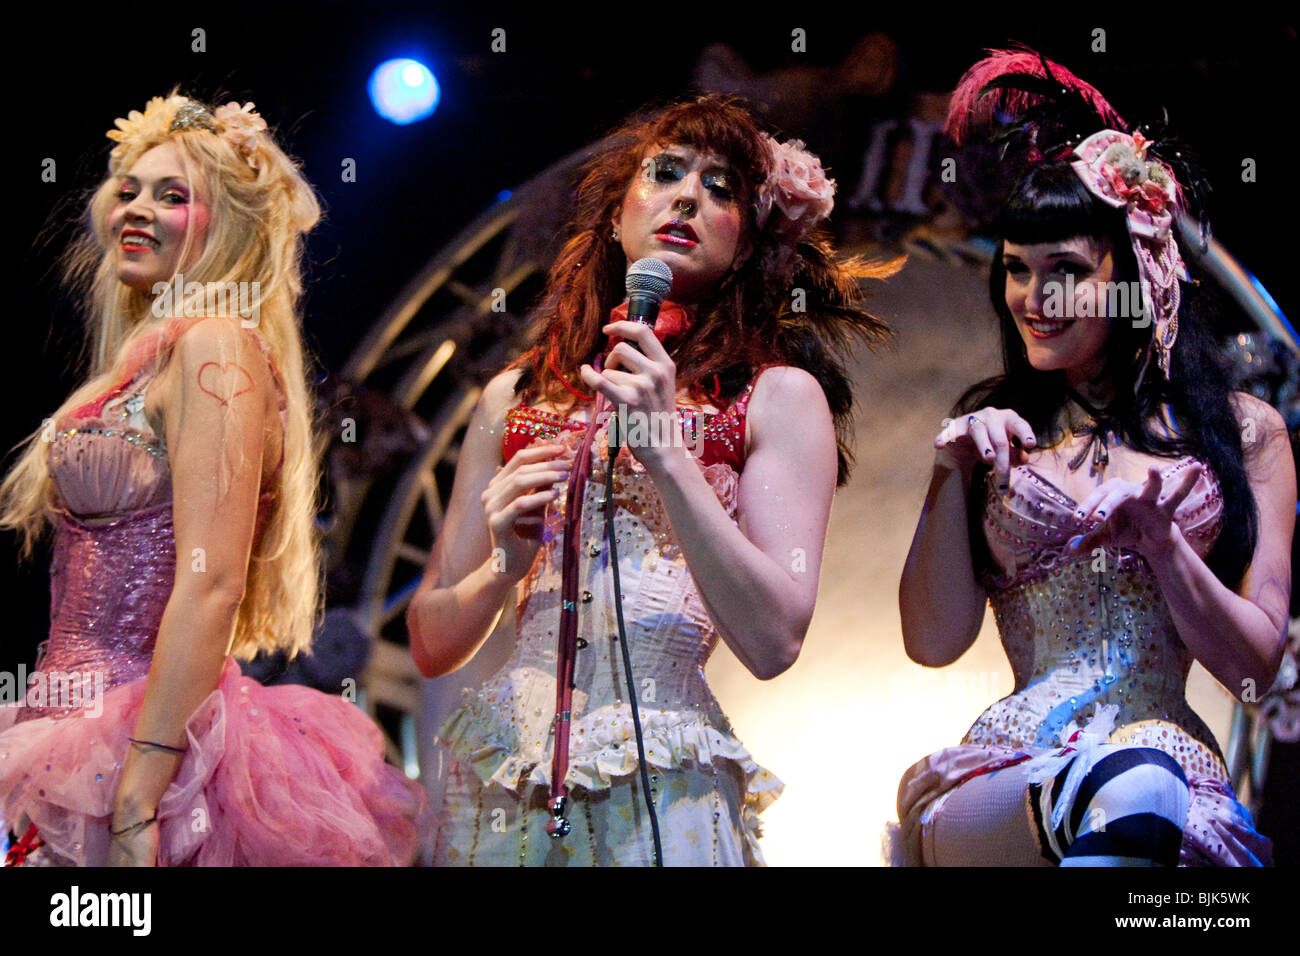 Singers and dancers from Emilie Autumn's live show at her only Swiss concert in Club Haerterei in Zurich, Switzerland, - Stock Image